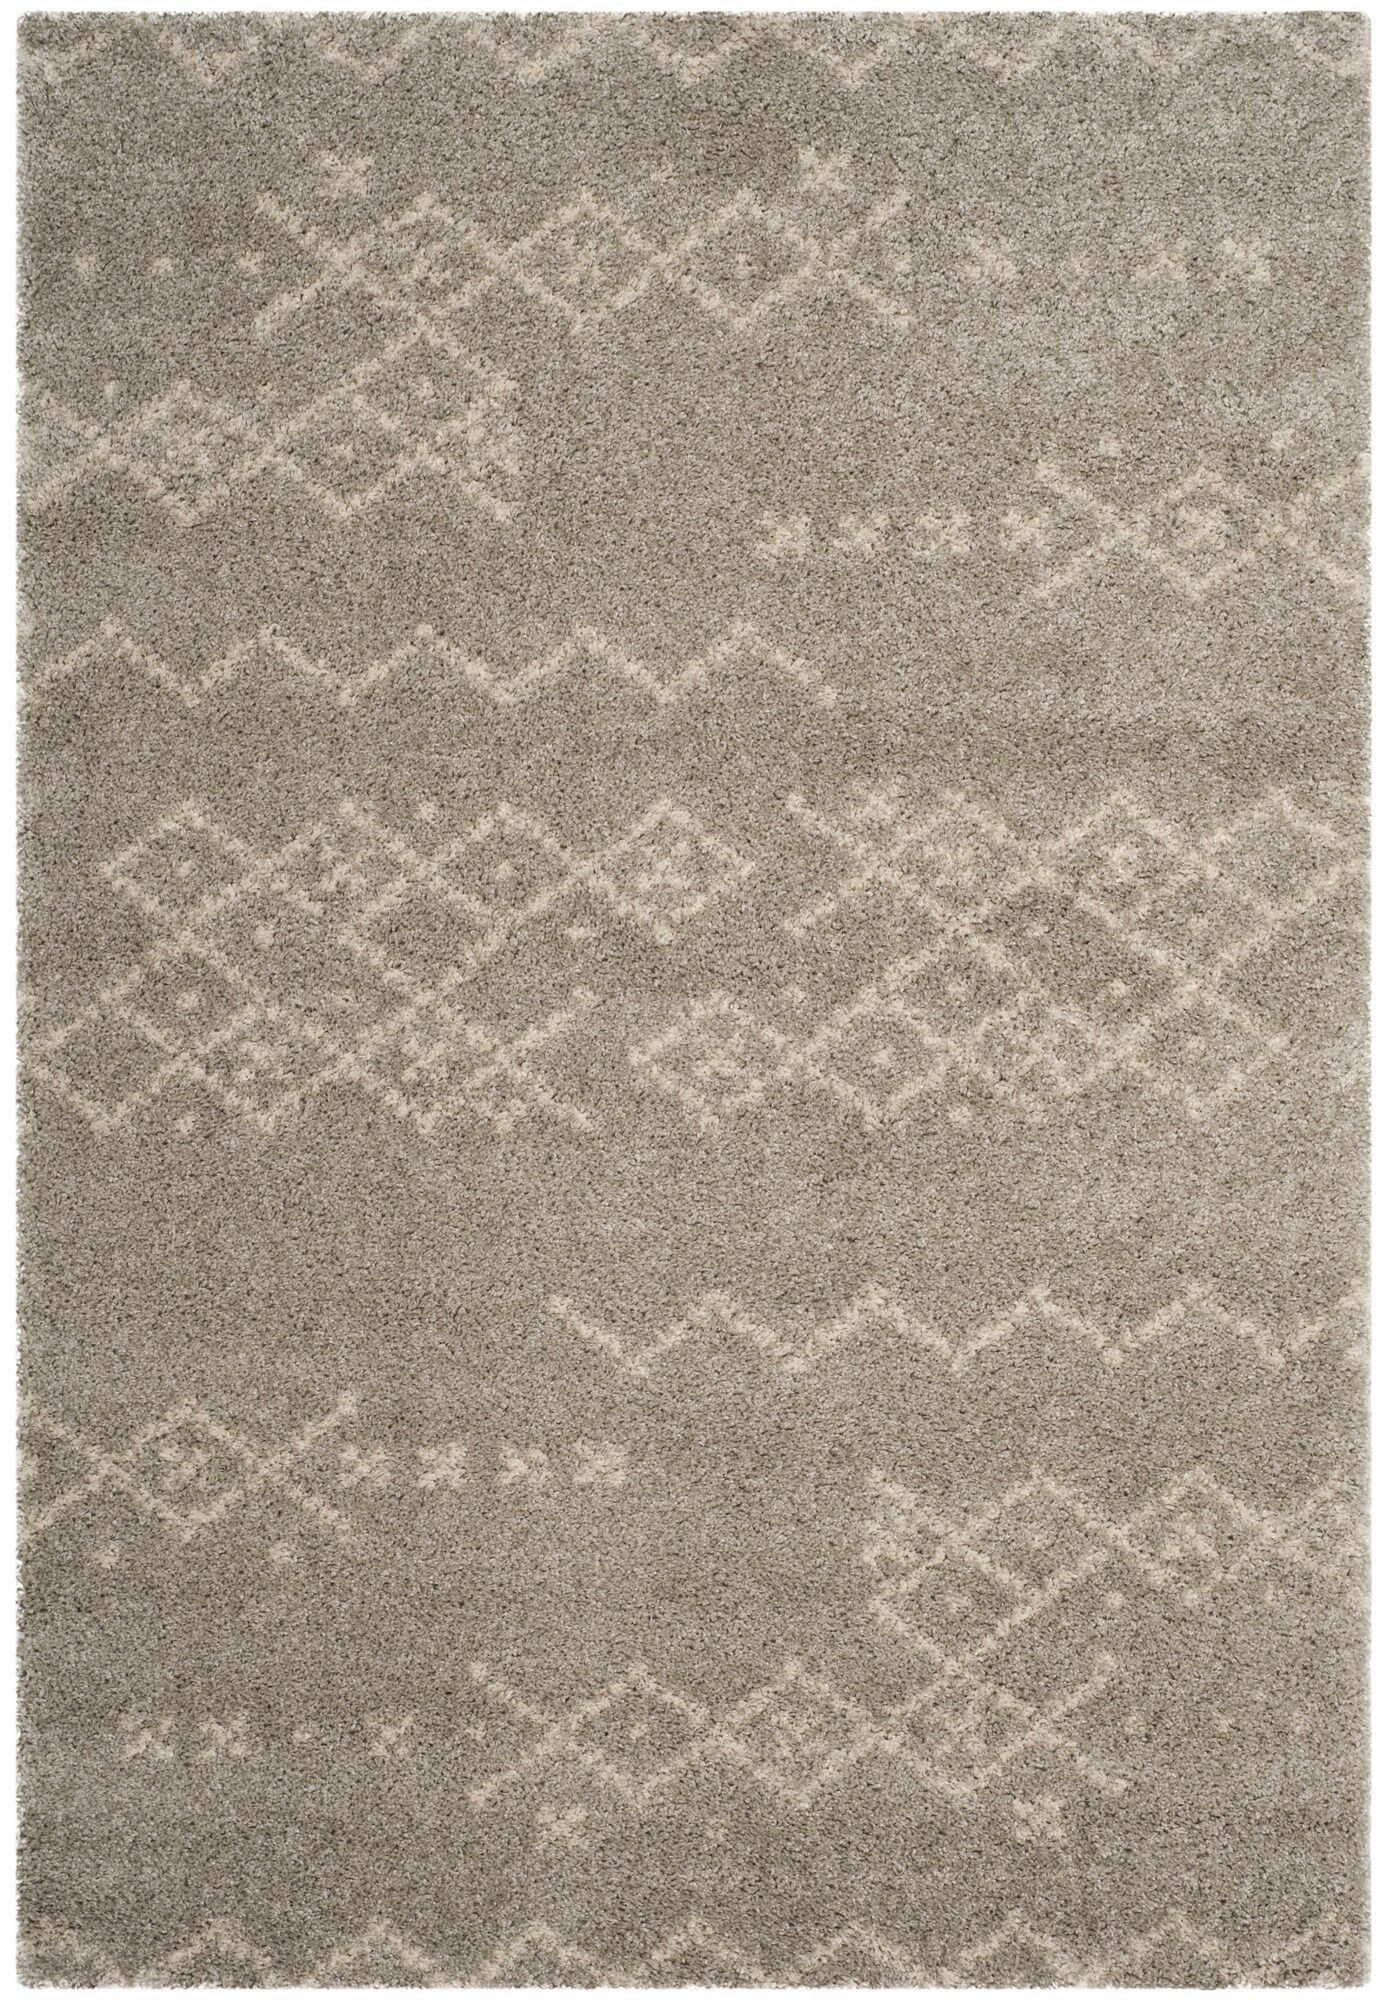 Amicus Brown Area Rug Rug Size: Rectangle 4' x 6'